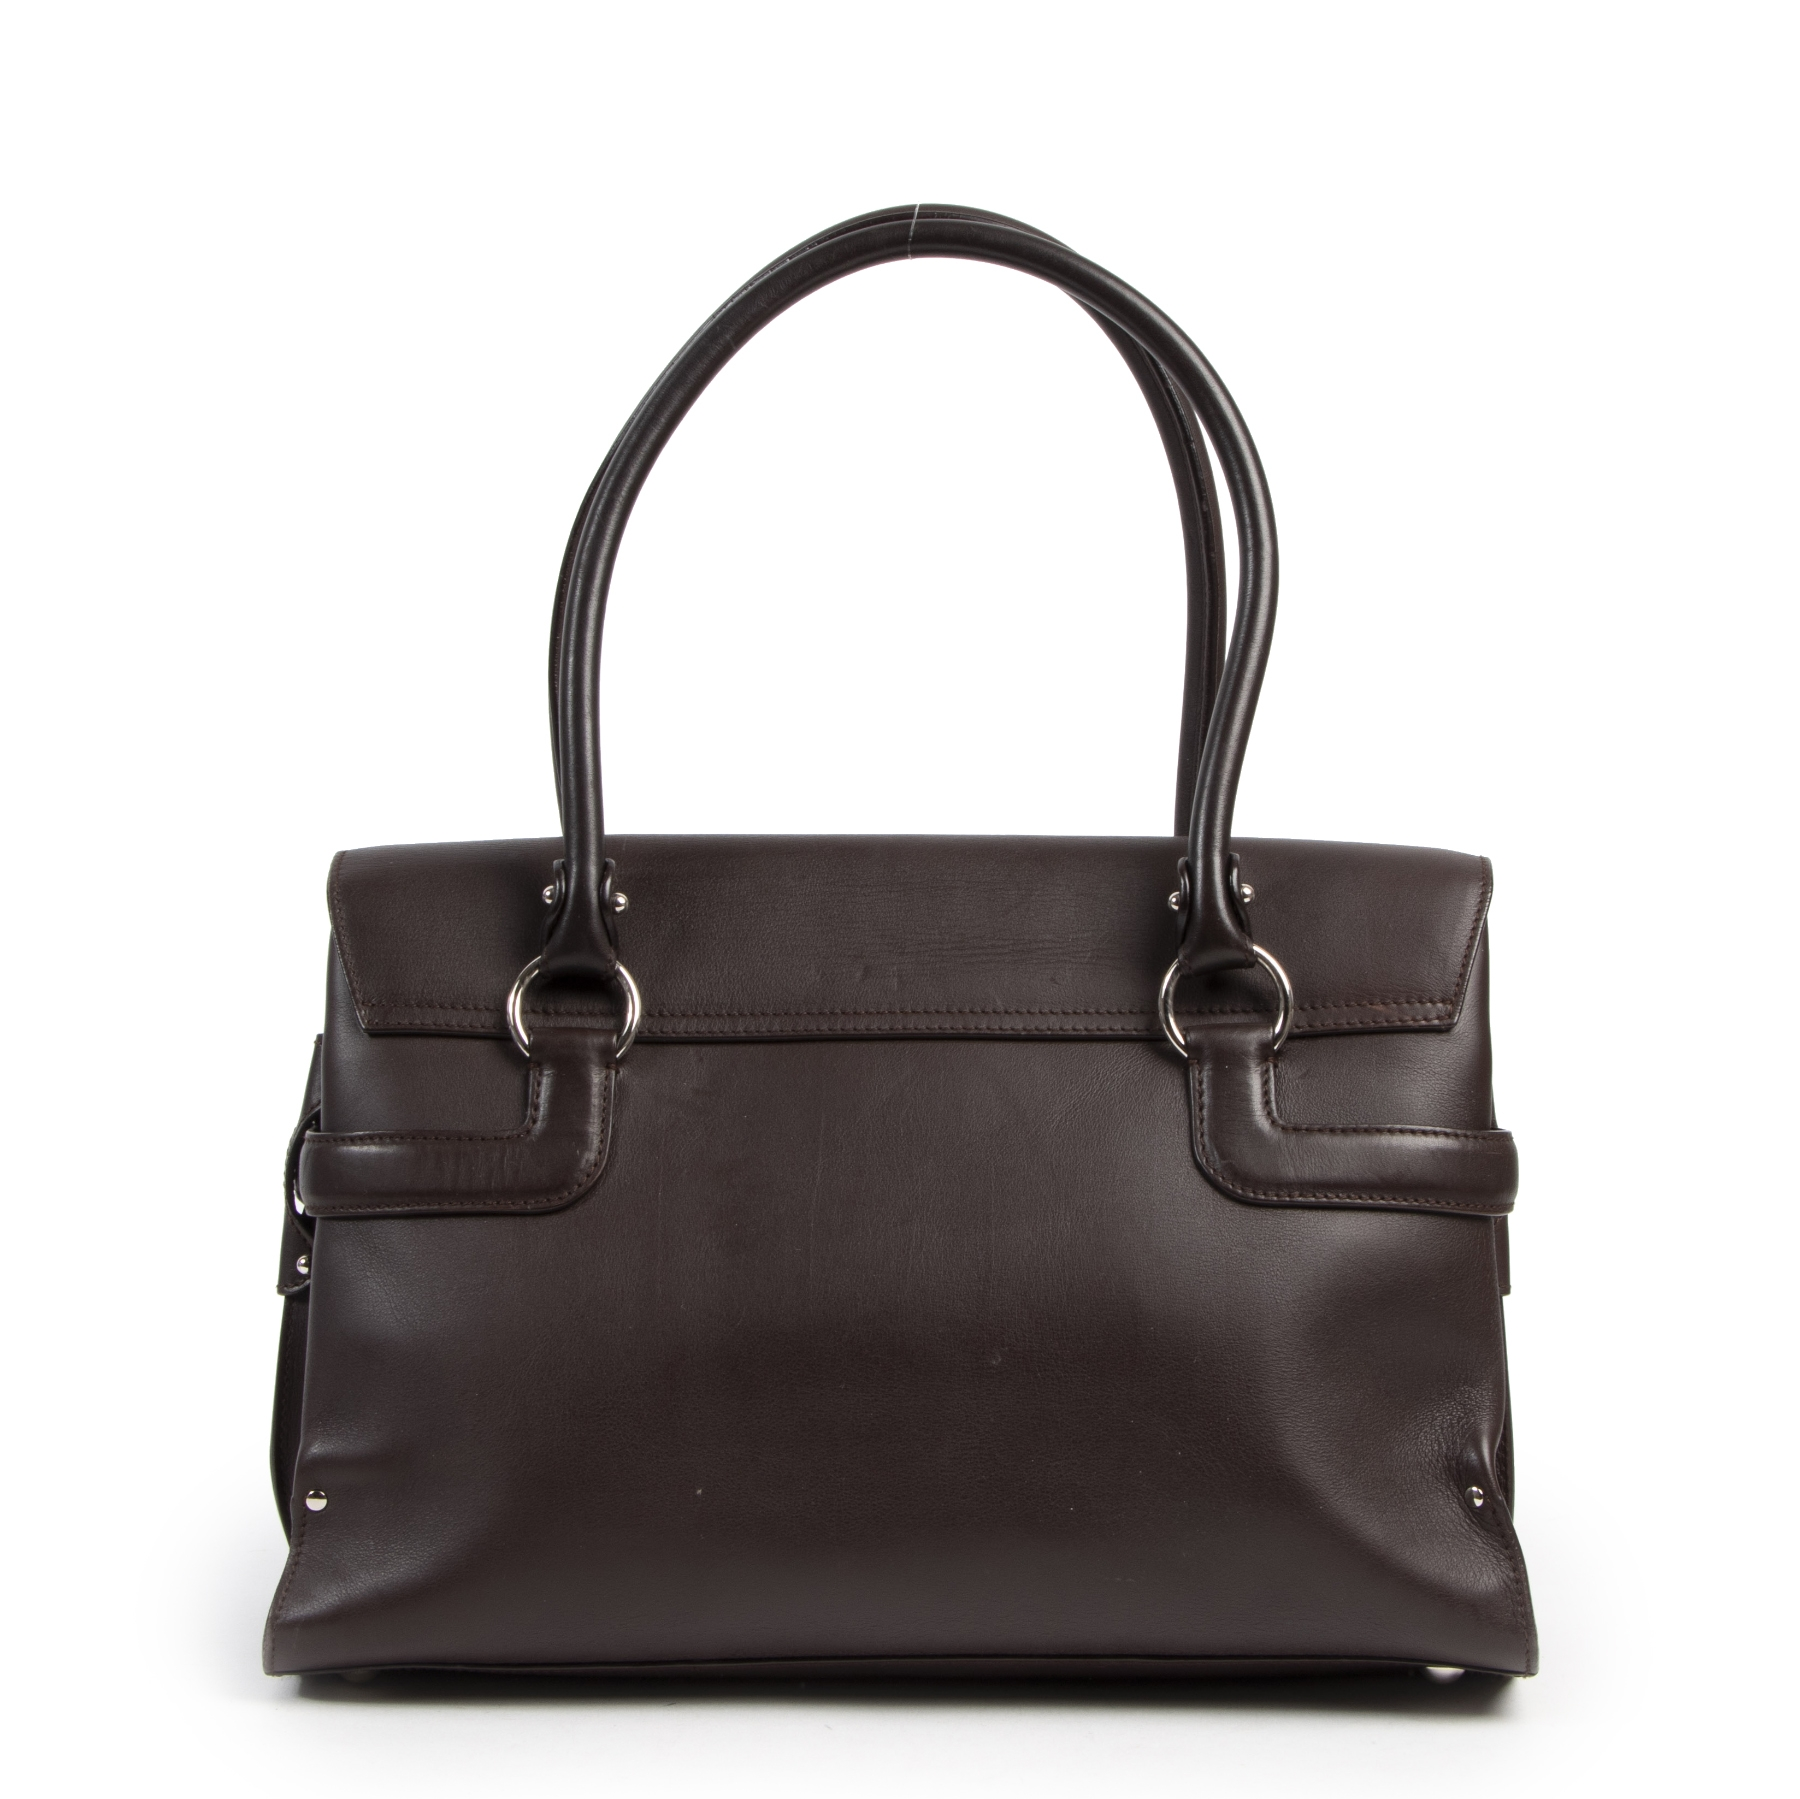 Salvatore Ferragamo Brown Top Handle Bag for the best price at Labellov